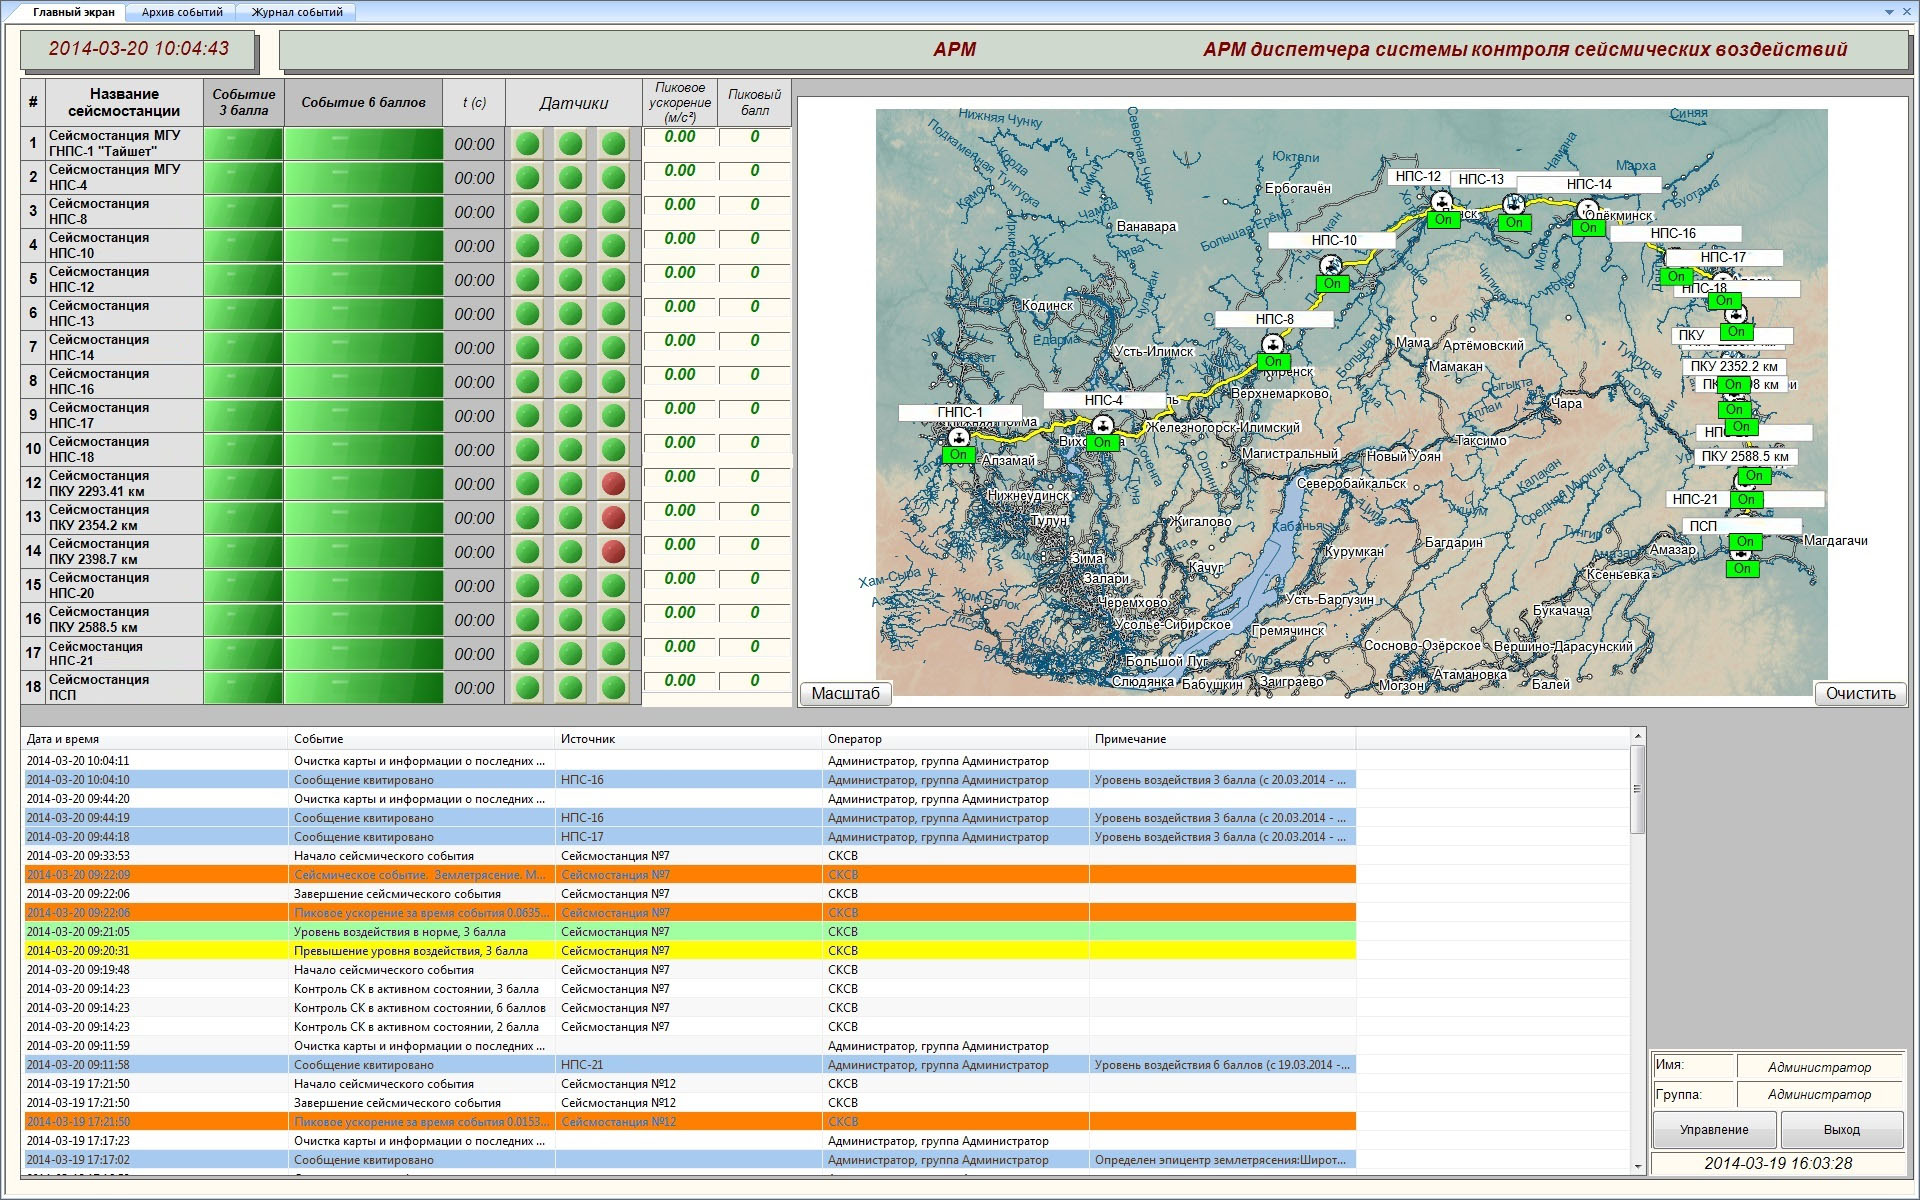 Seismic impact control system - information for the operator of the system - green color indicates the locations of the seismic stations